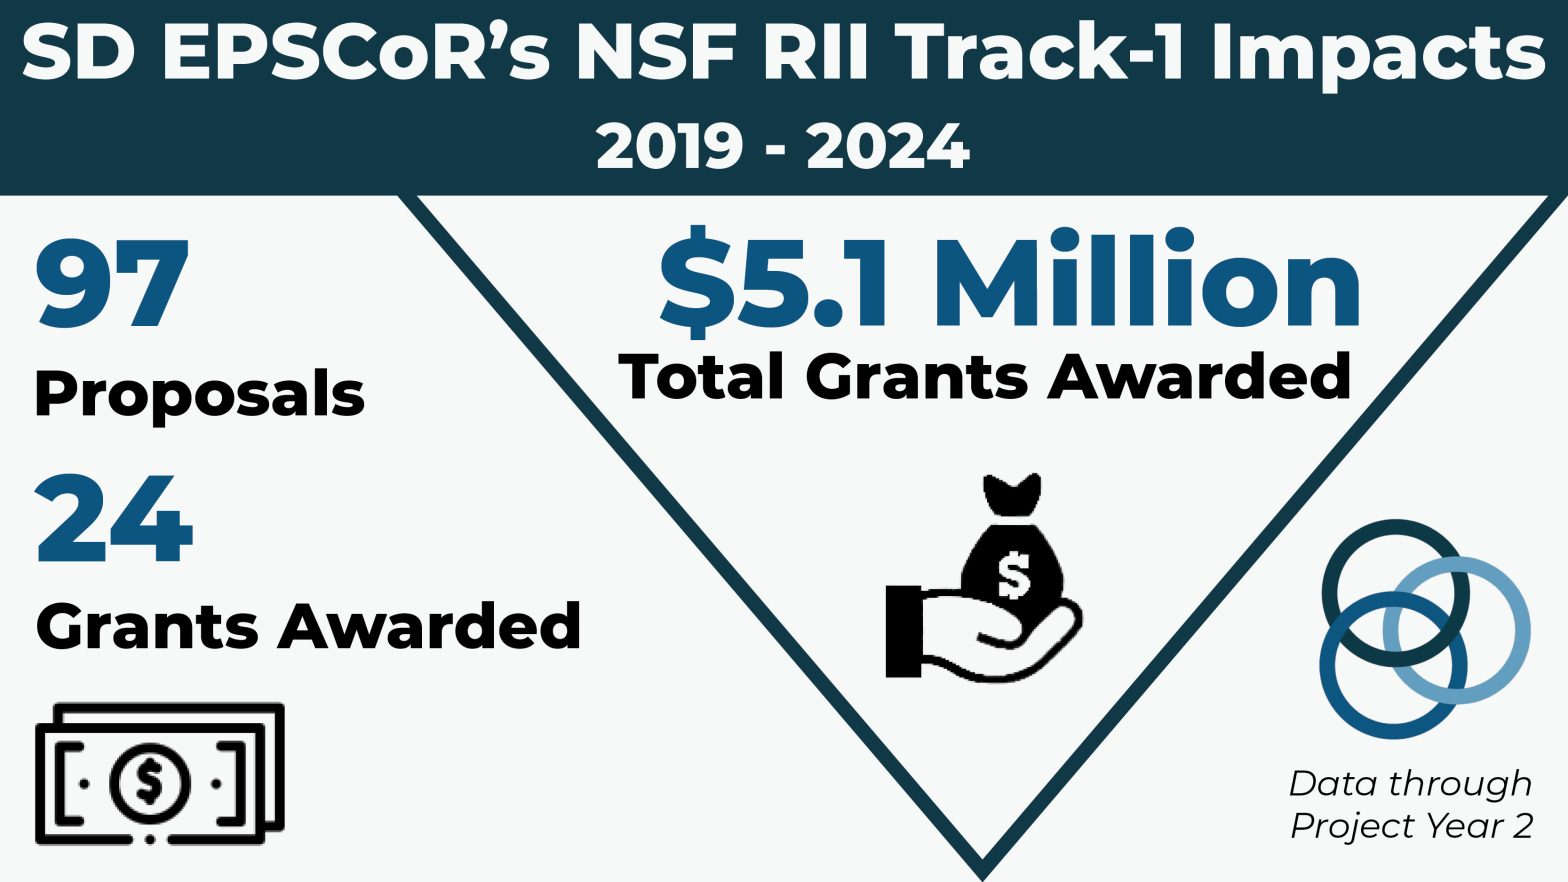 SD EPSCoR's NSF RII Track-1 Impacts (2019-2024): 97 proposals, 24 grants awarded, $5.1 million total grants awarded. (Statistics as of June 2021.)